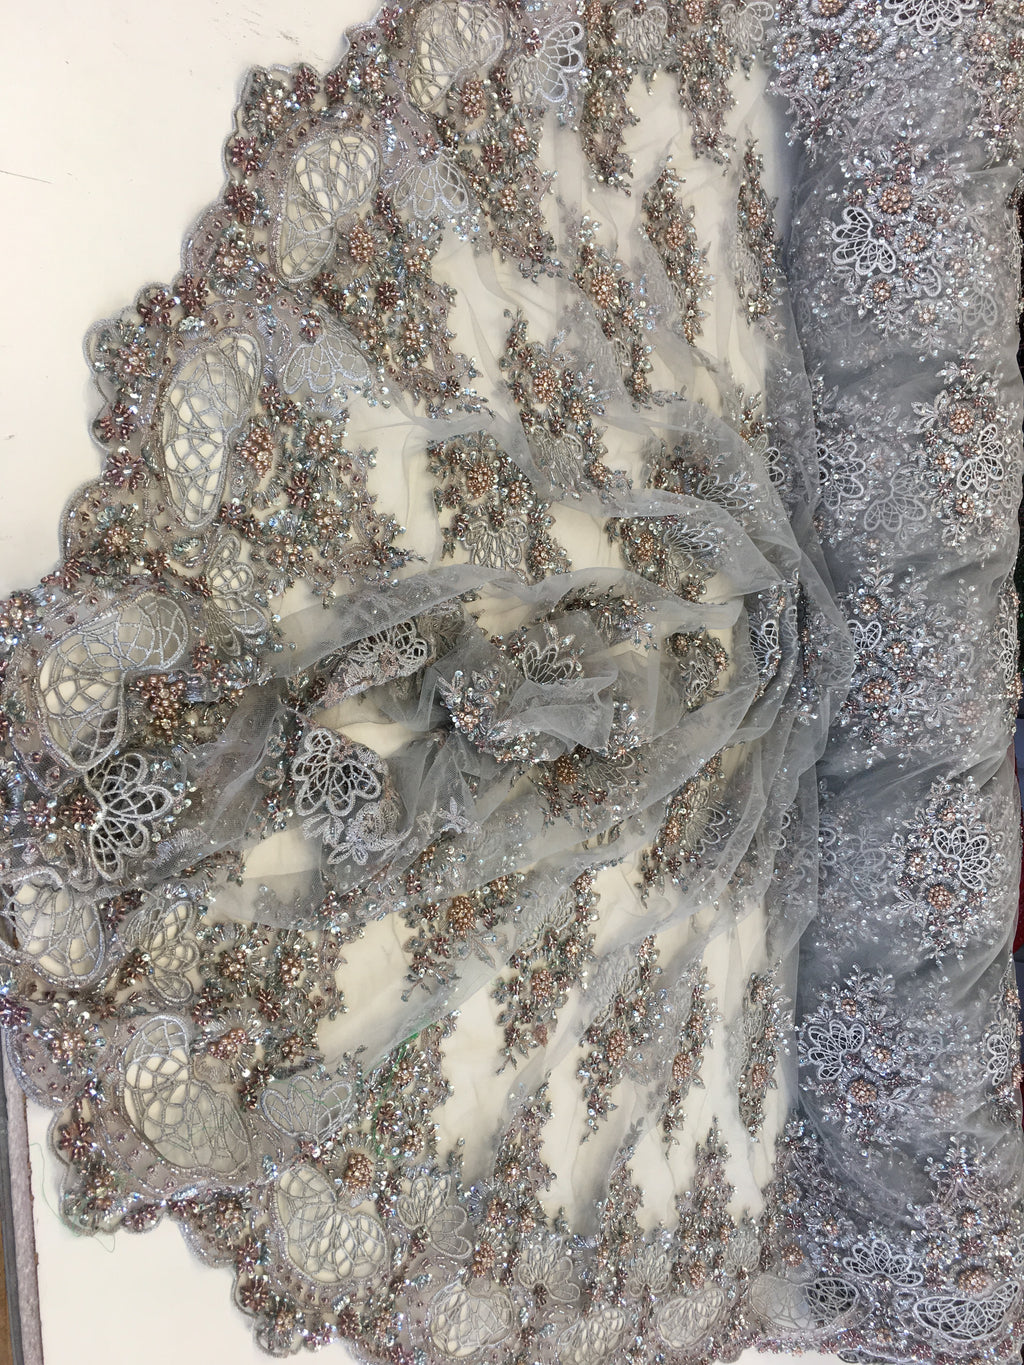 Zohar Designs Beaded Mesh Lace Gray Beaded Fabric Lace Fabric By The Yard Embroider Beaded On A Mesh For Bridal Veil